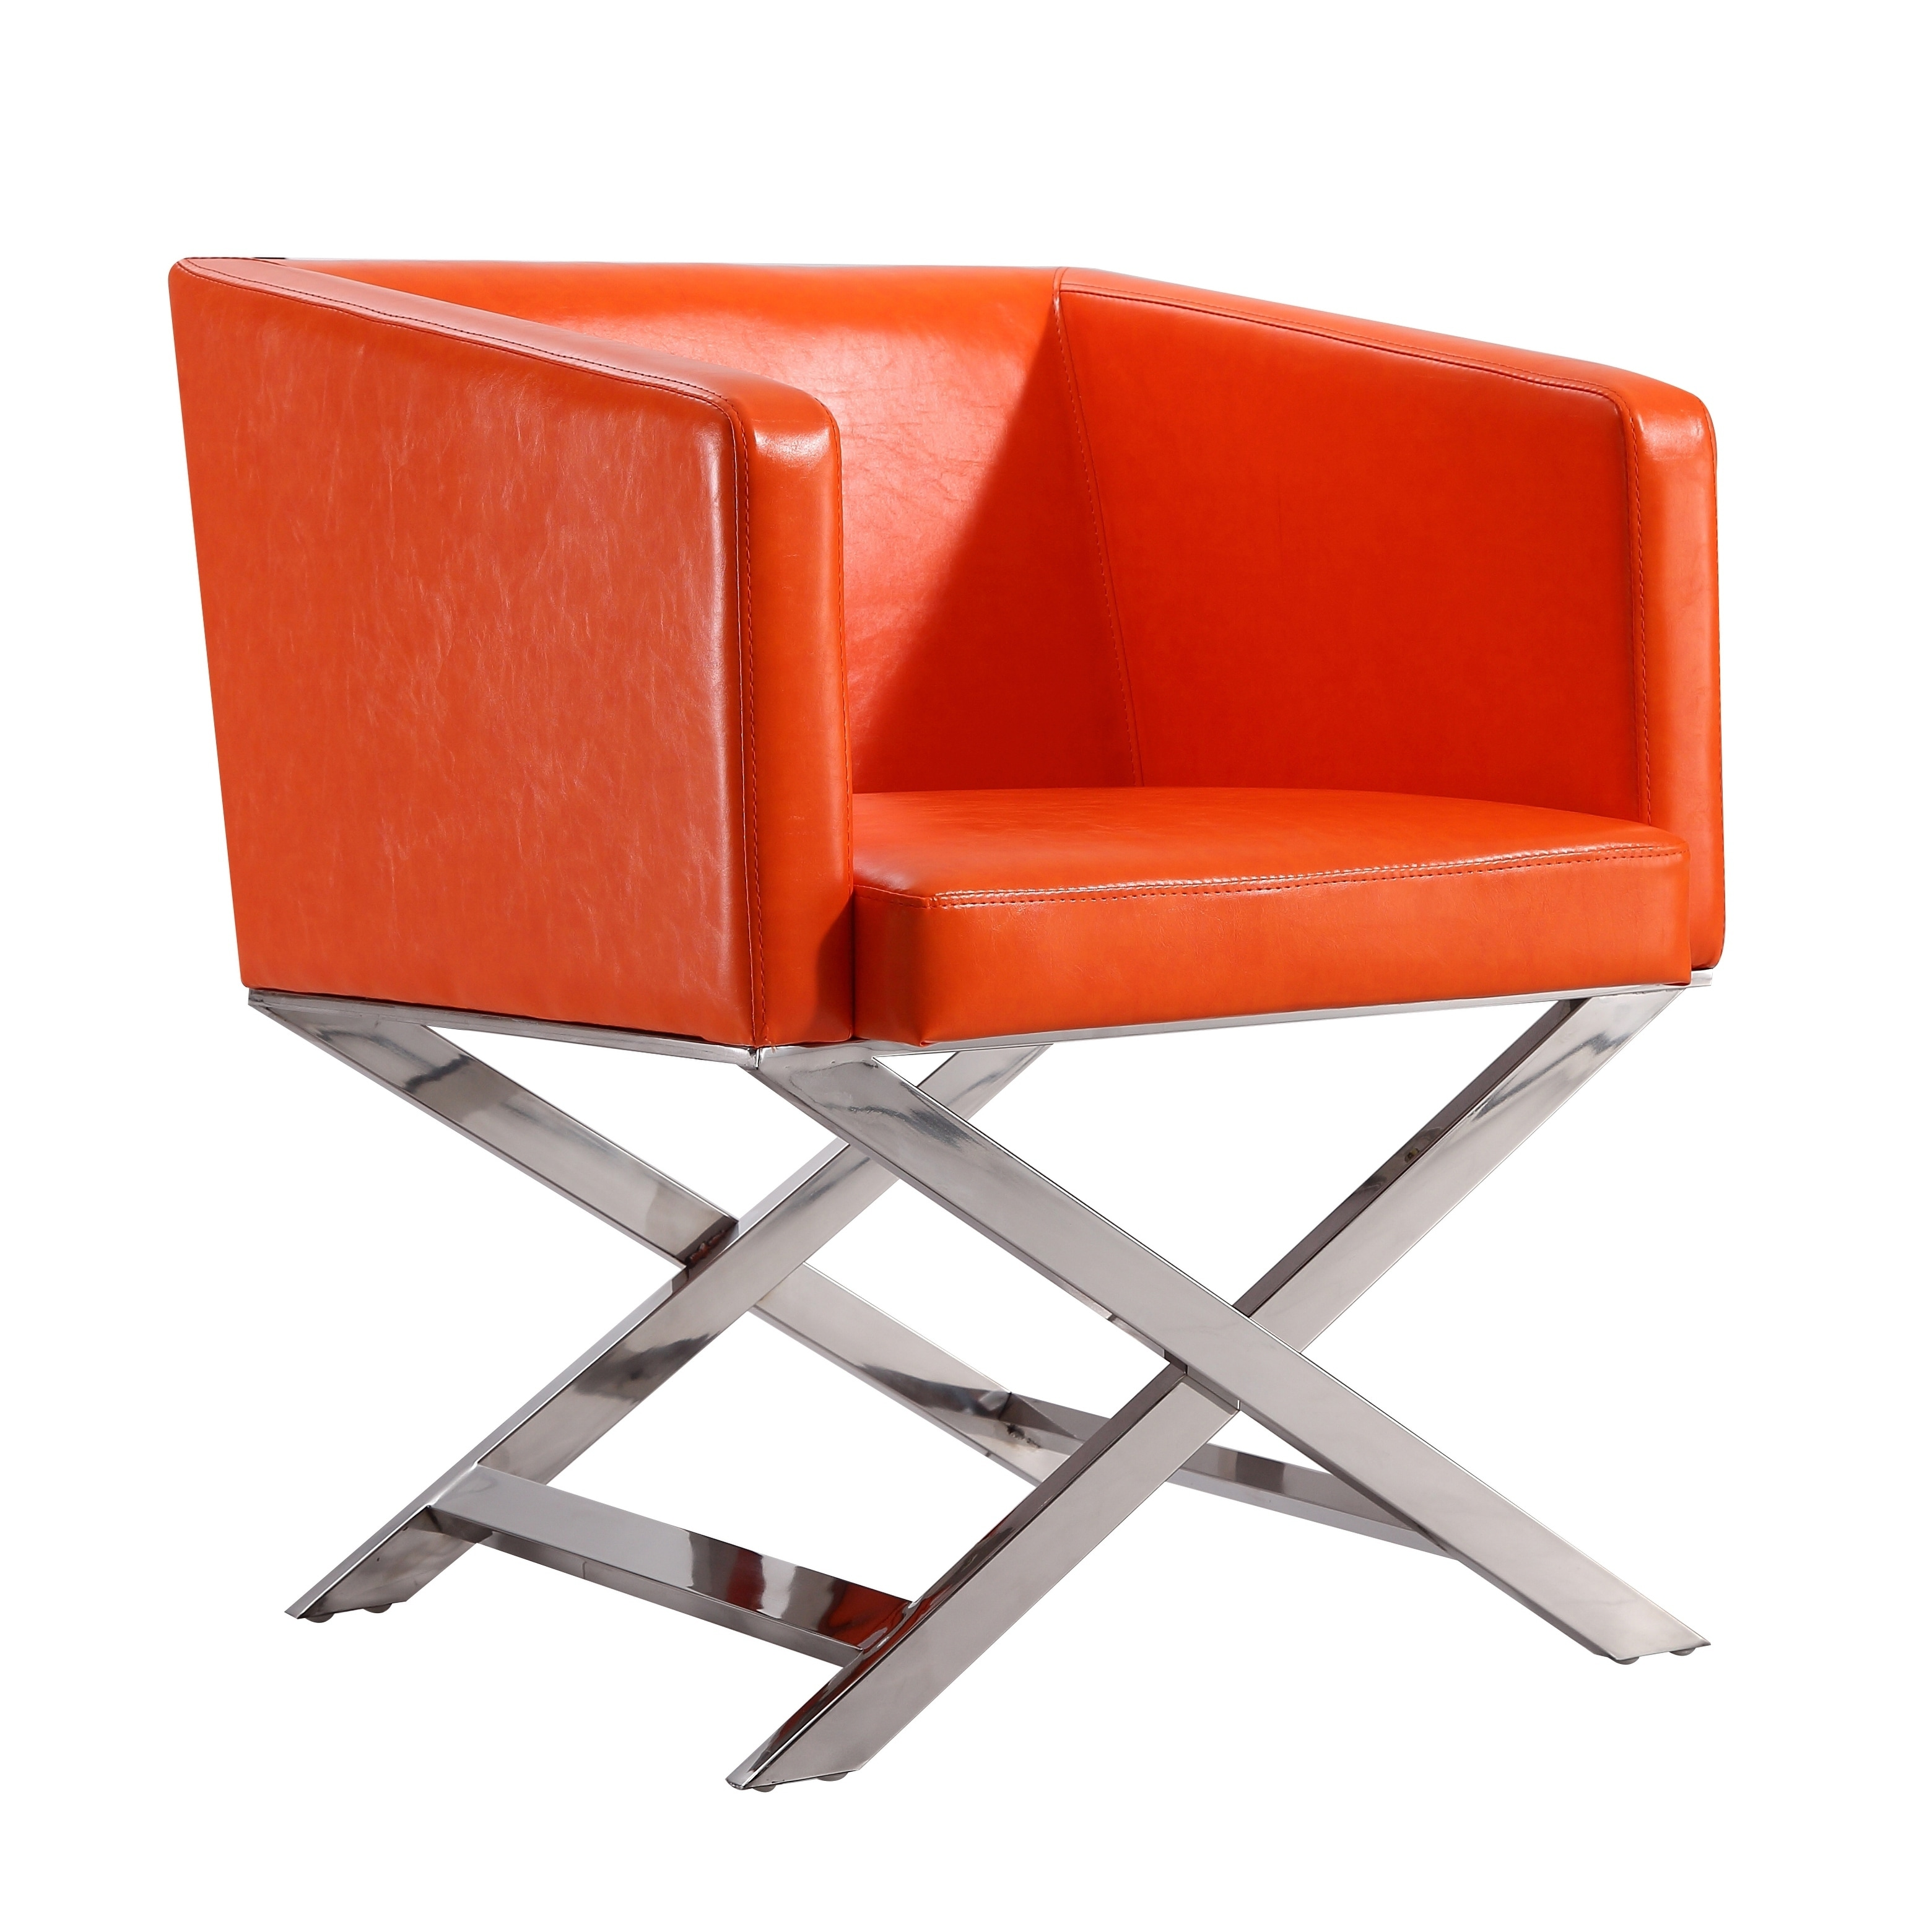 Ceets Hollywood Lounge Accent Chair